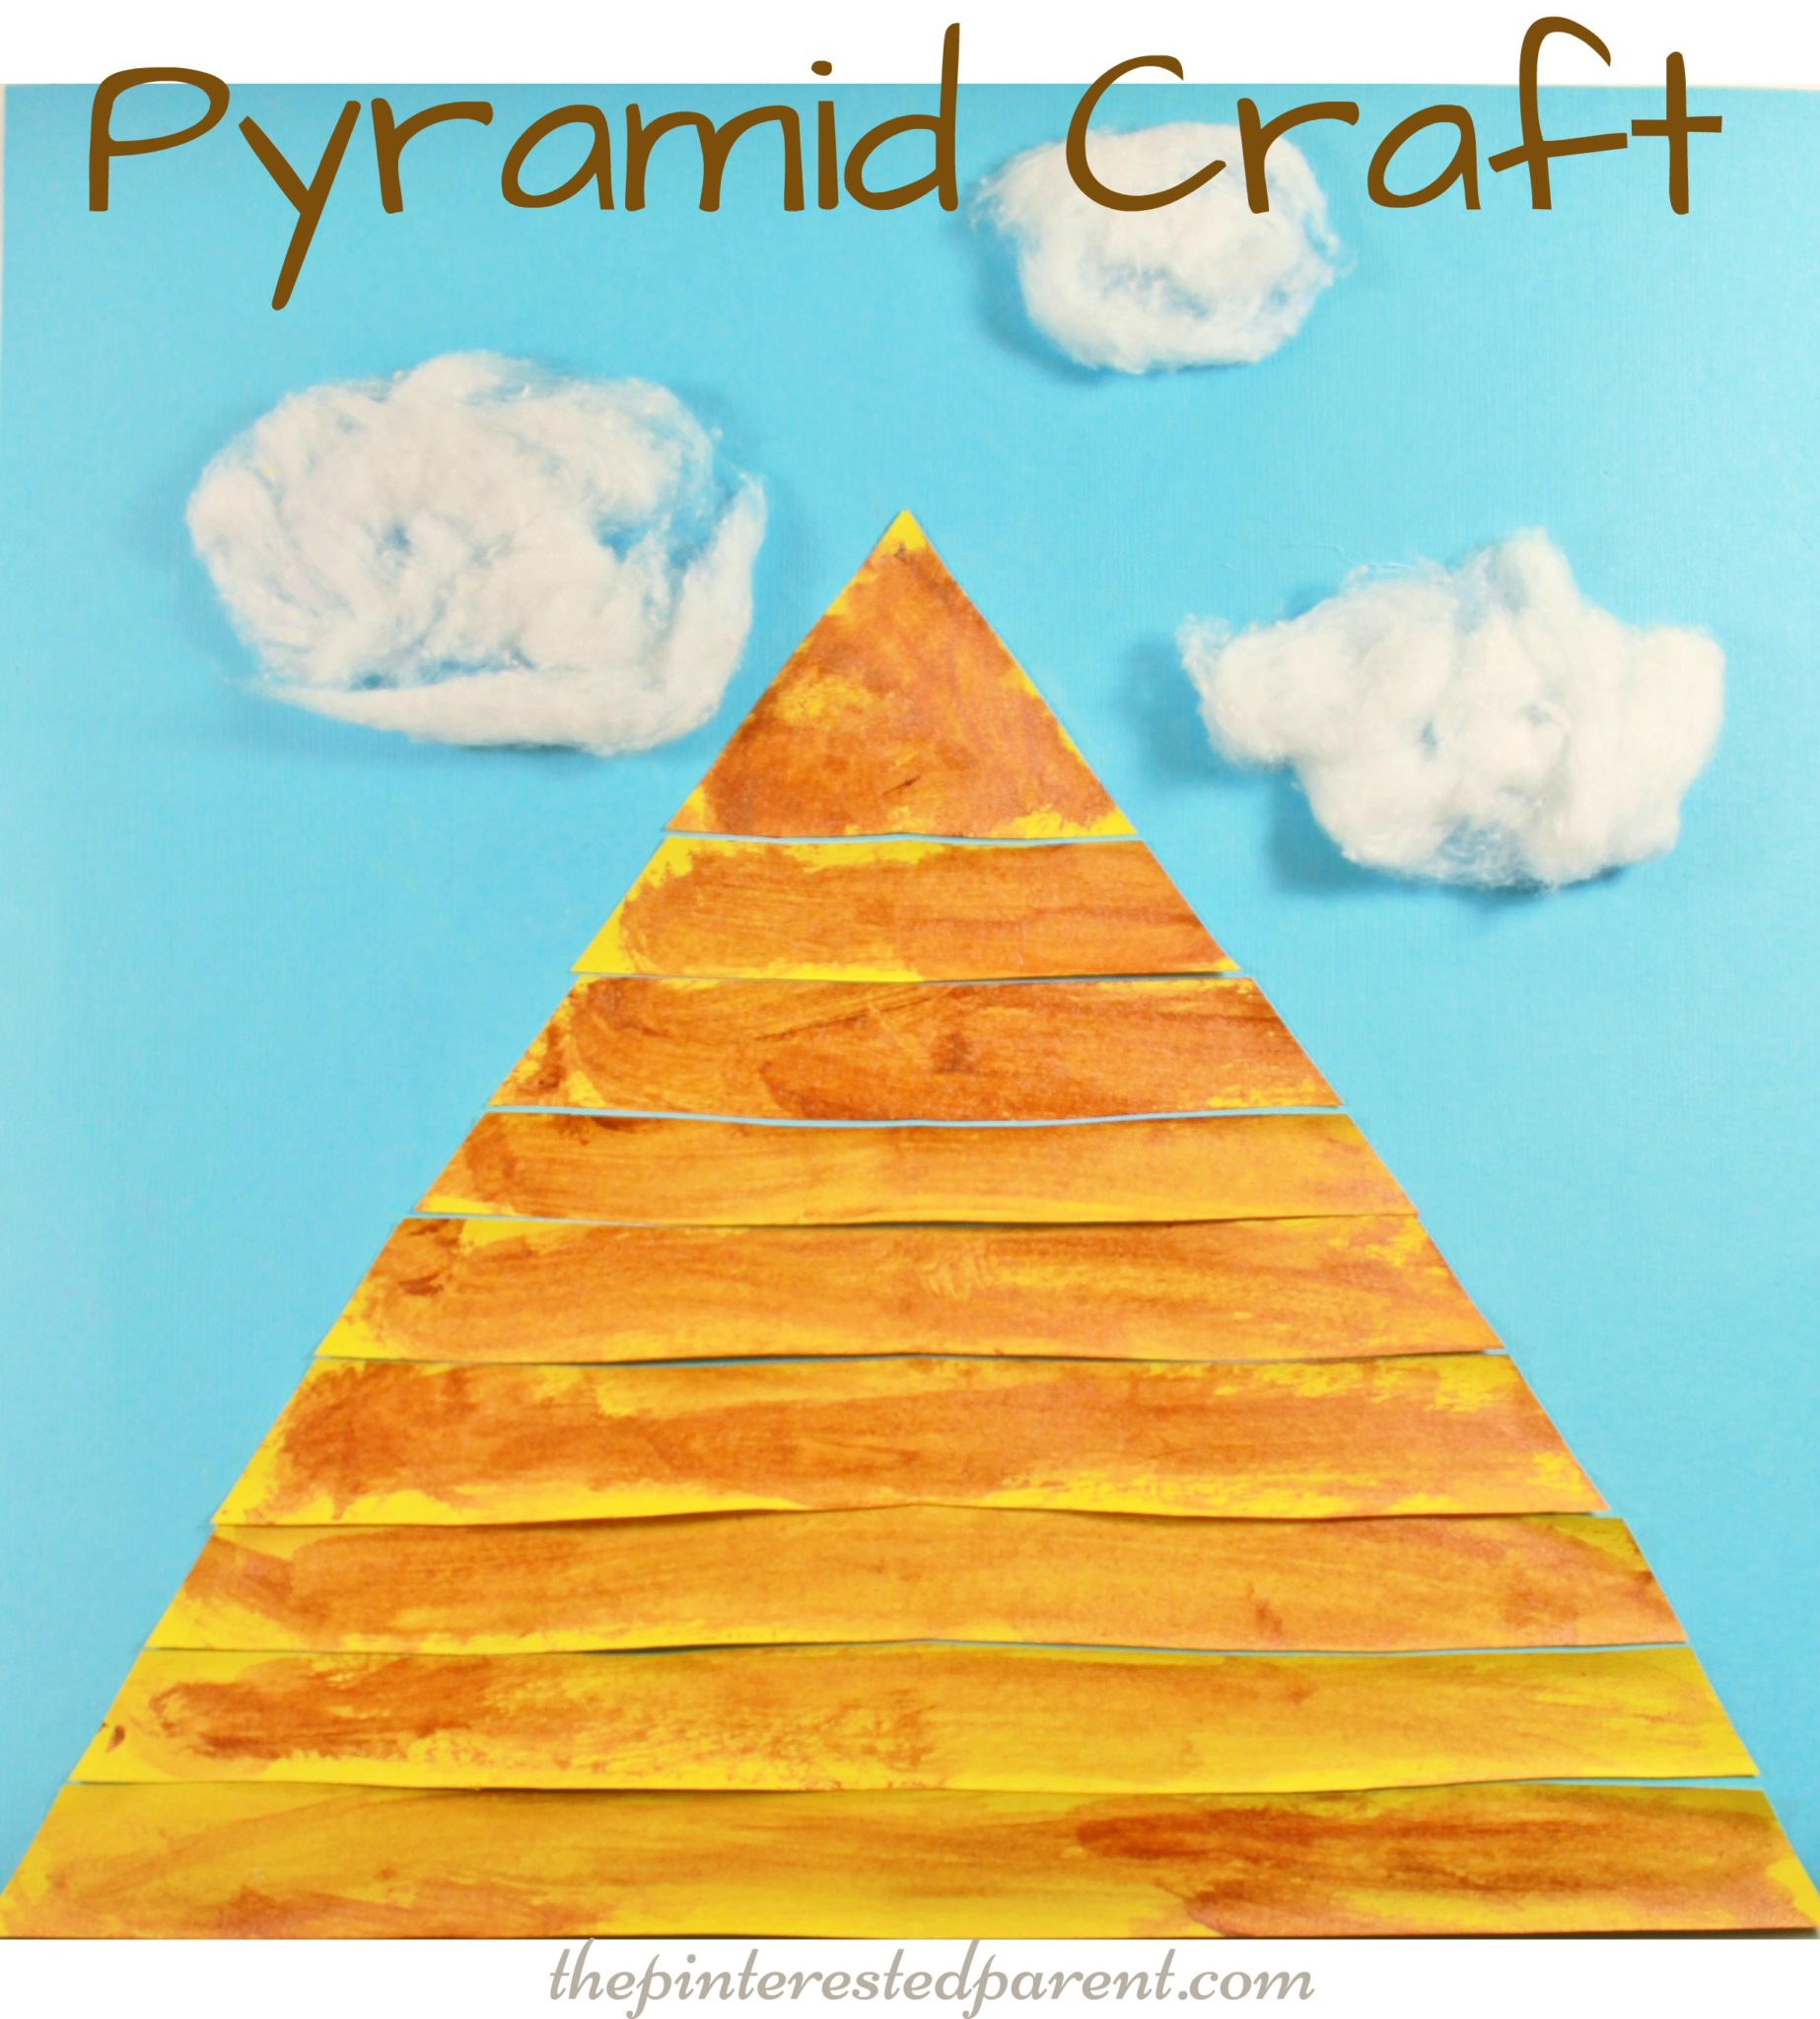 Egyptian Pyramid Craft The Pinterested Parent